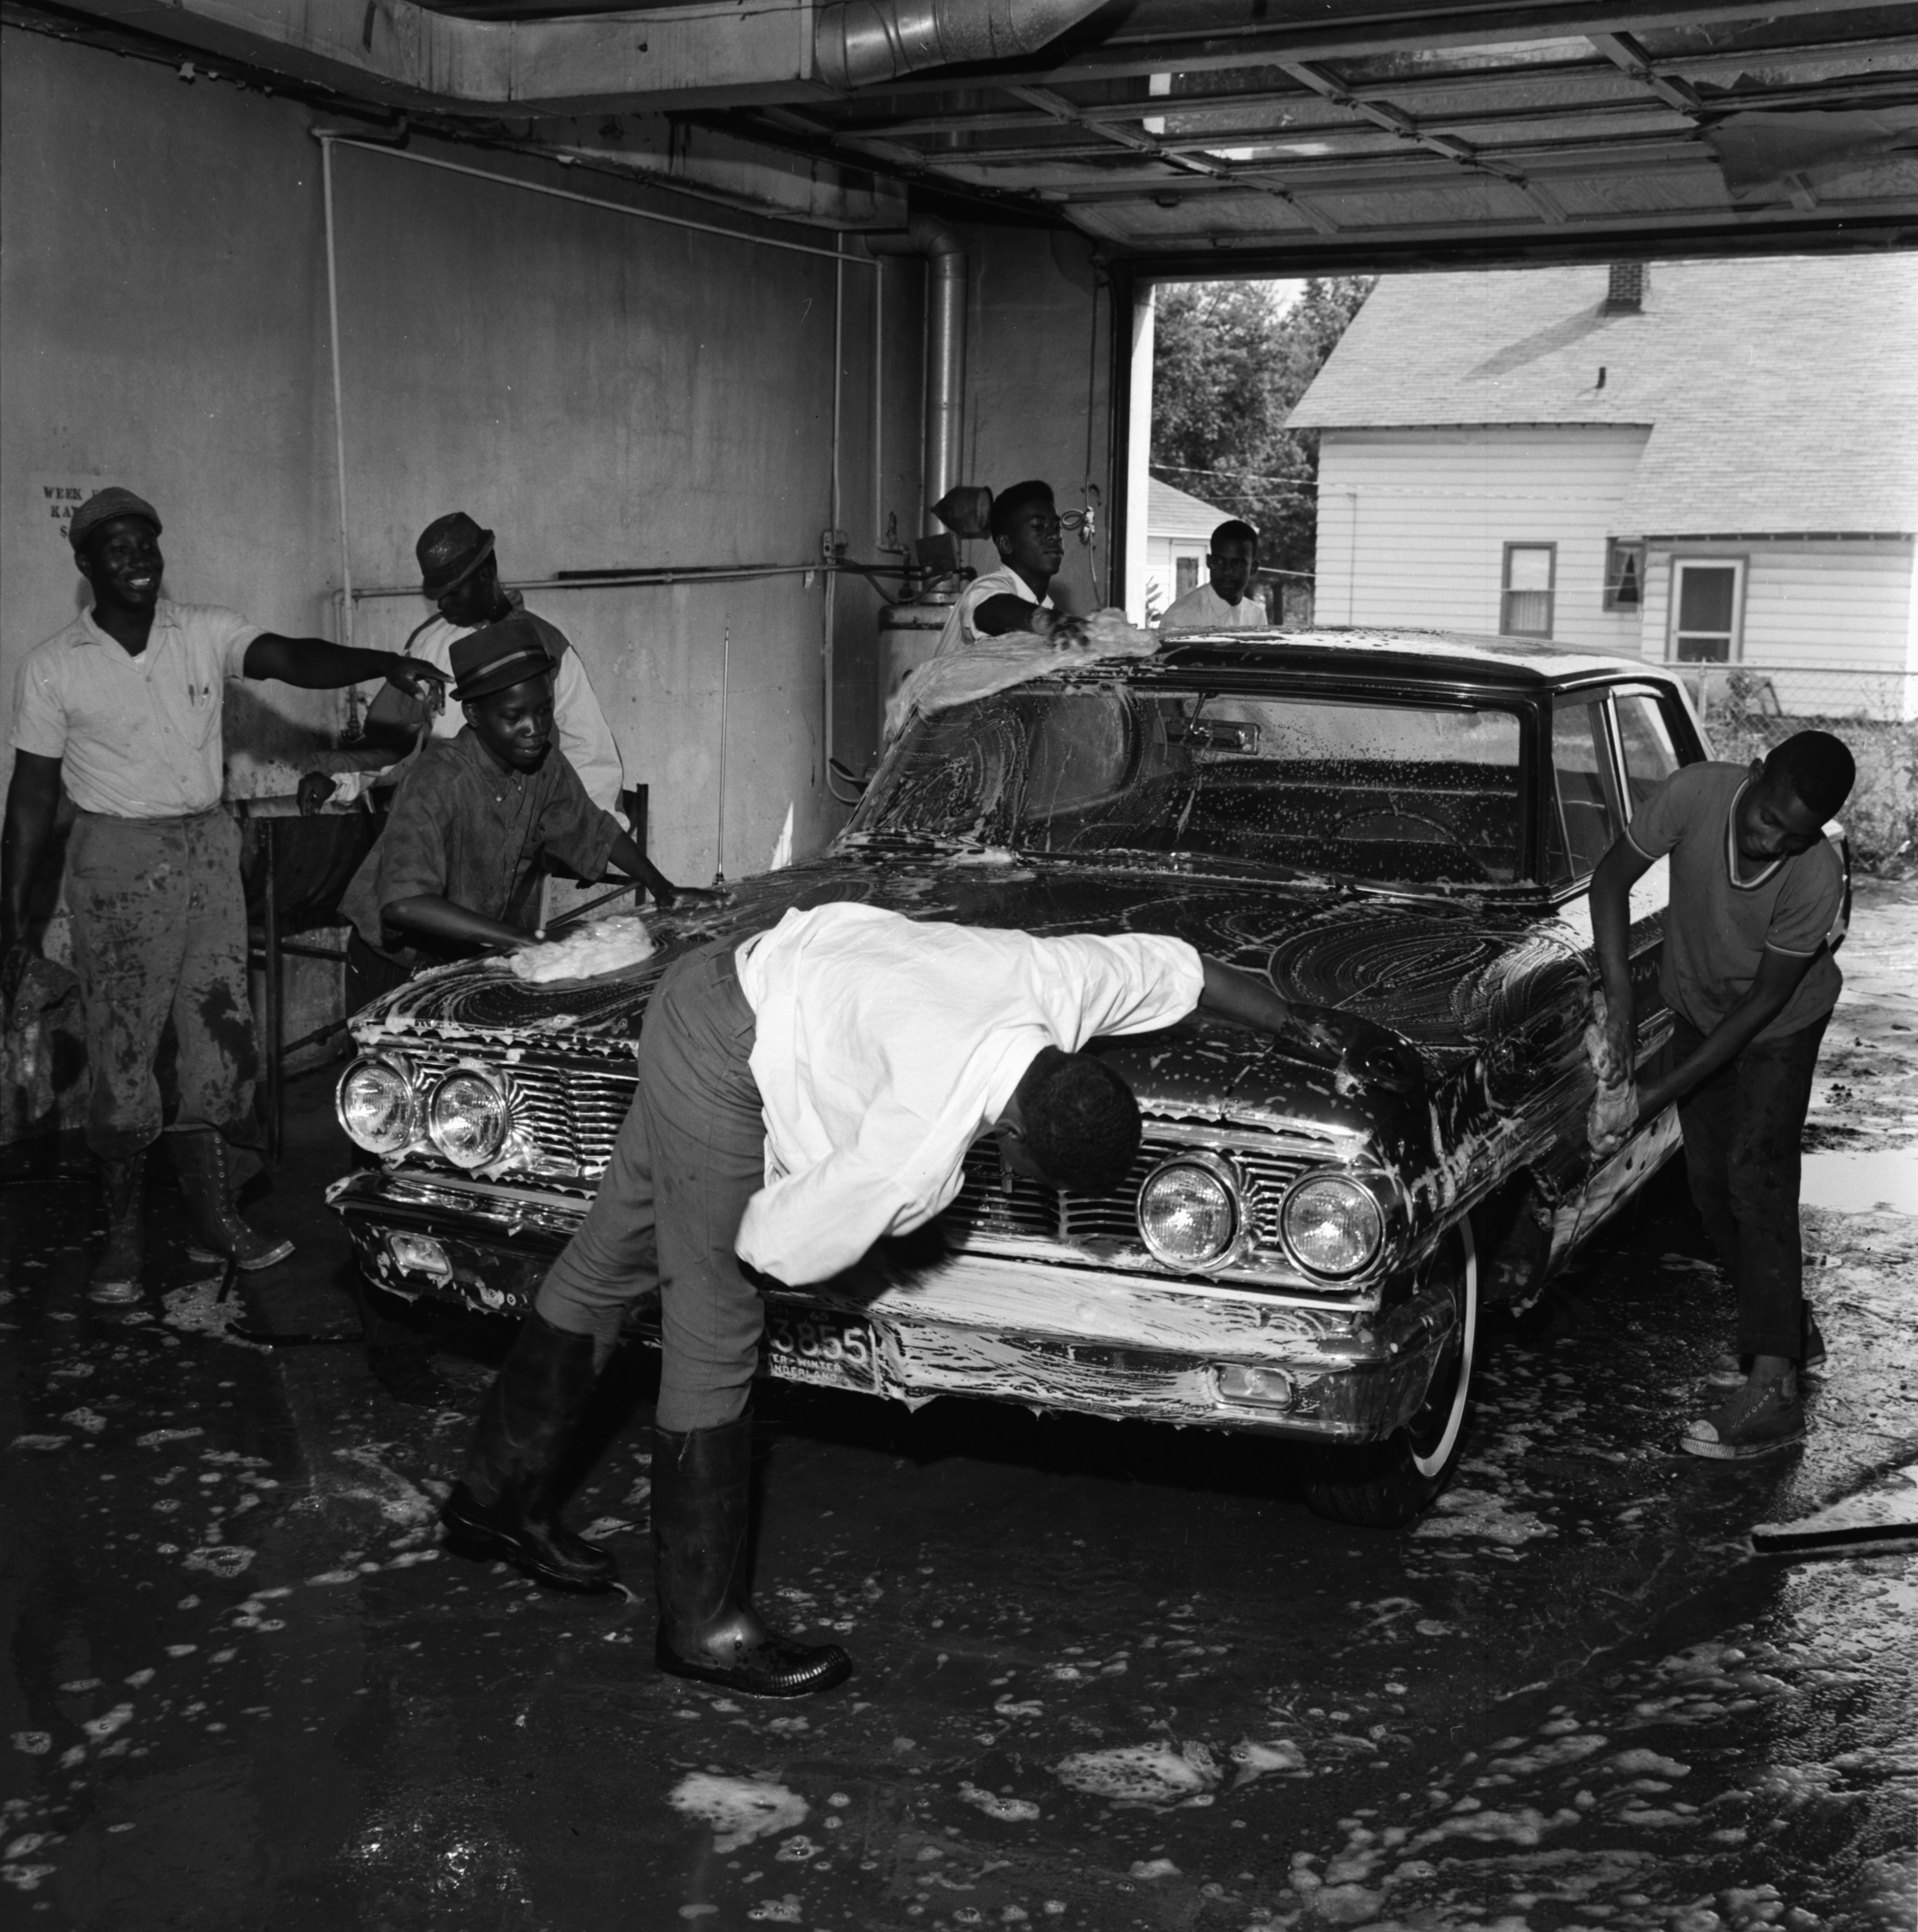 Car Wash to Raise Funds for Charitable Projects at Christ Temple Apostolic Faith Church of Ypsilanti, August 1965 image